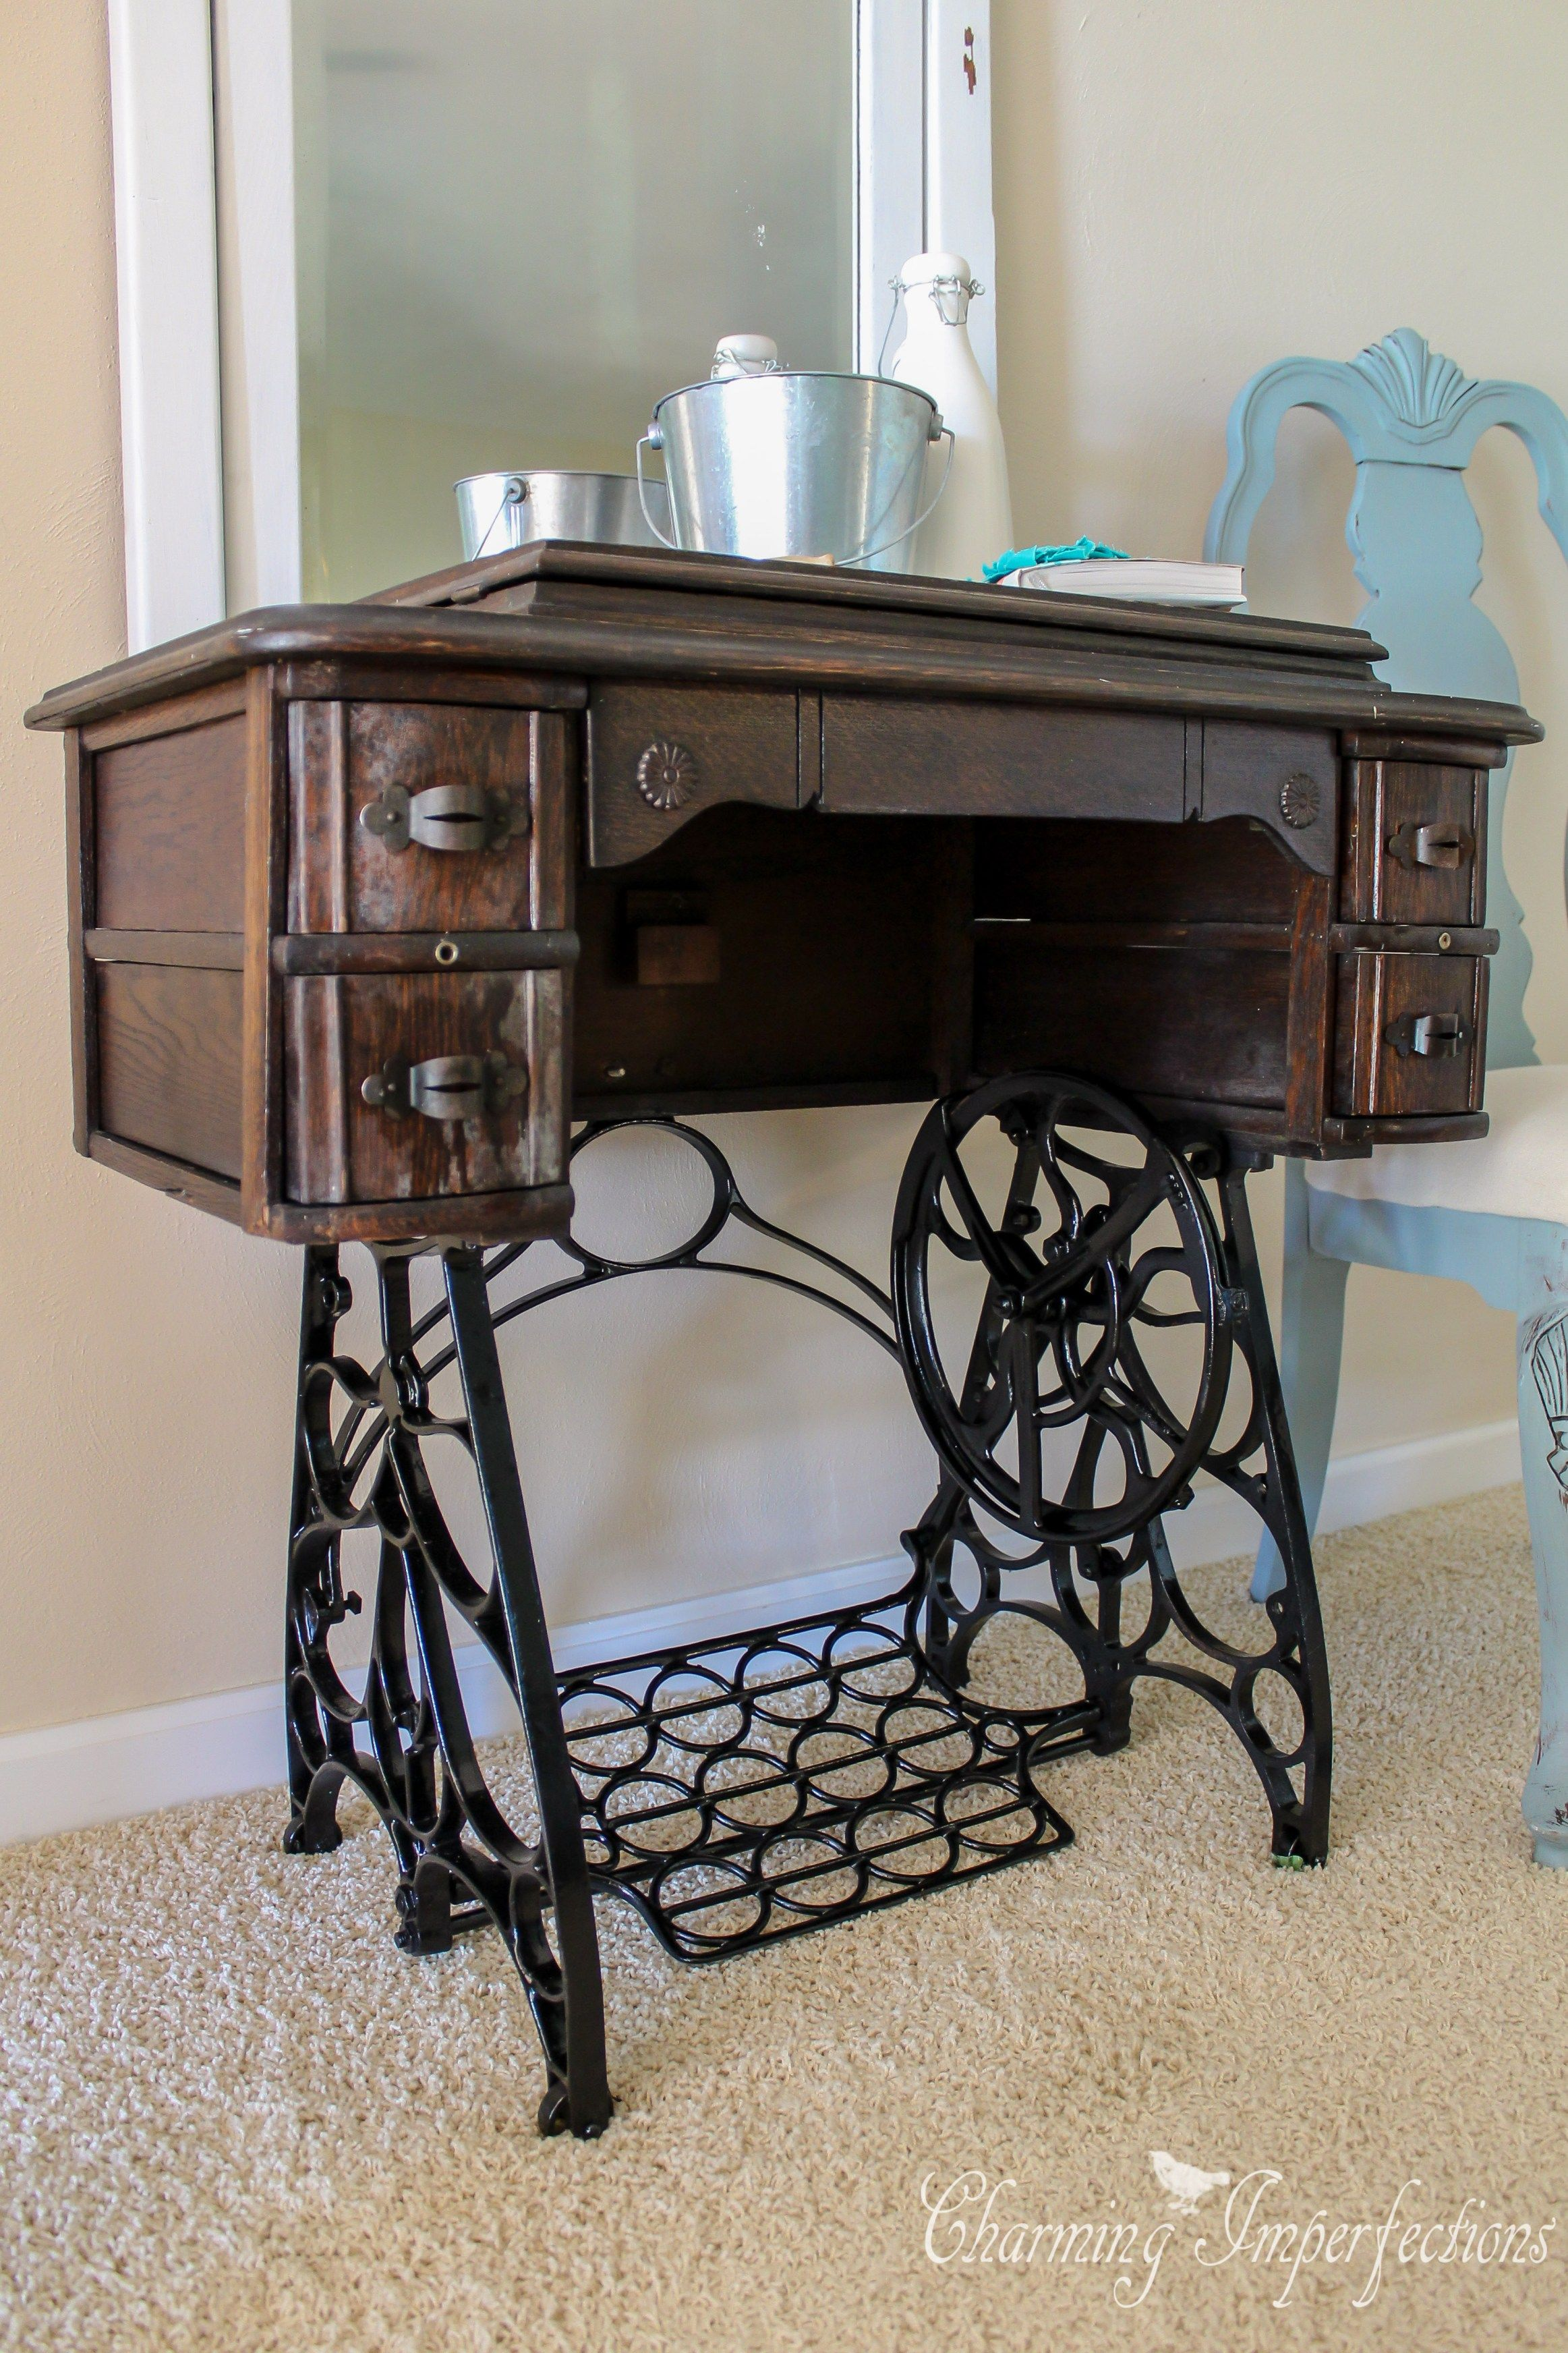 Antique Sewing table Gets Cleaned and Restored | Sewing ...